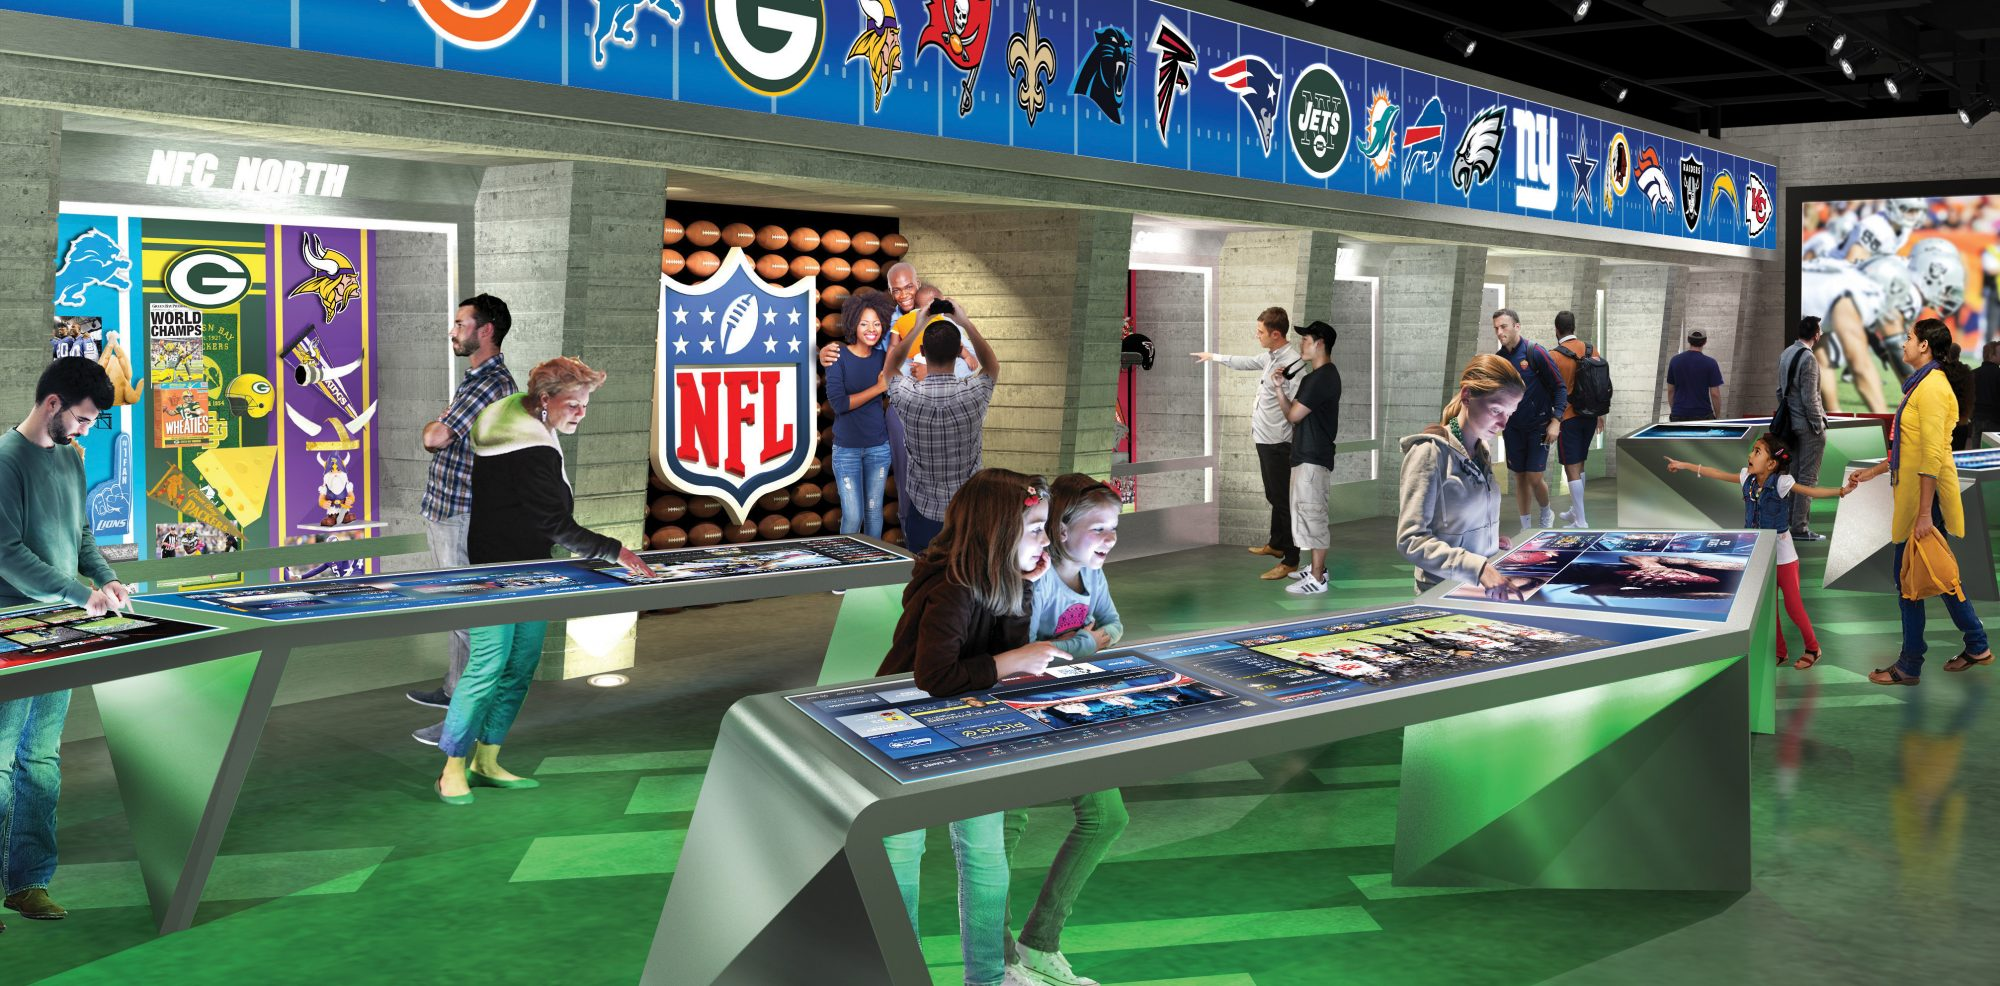 NFL Experience: Fans Will Soon Realize Football Heaven in Times Square 5